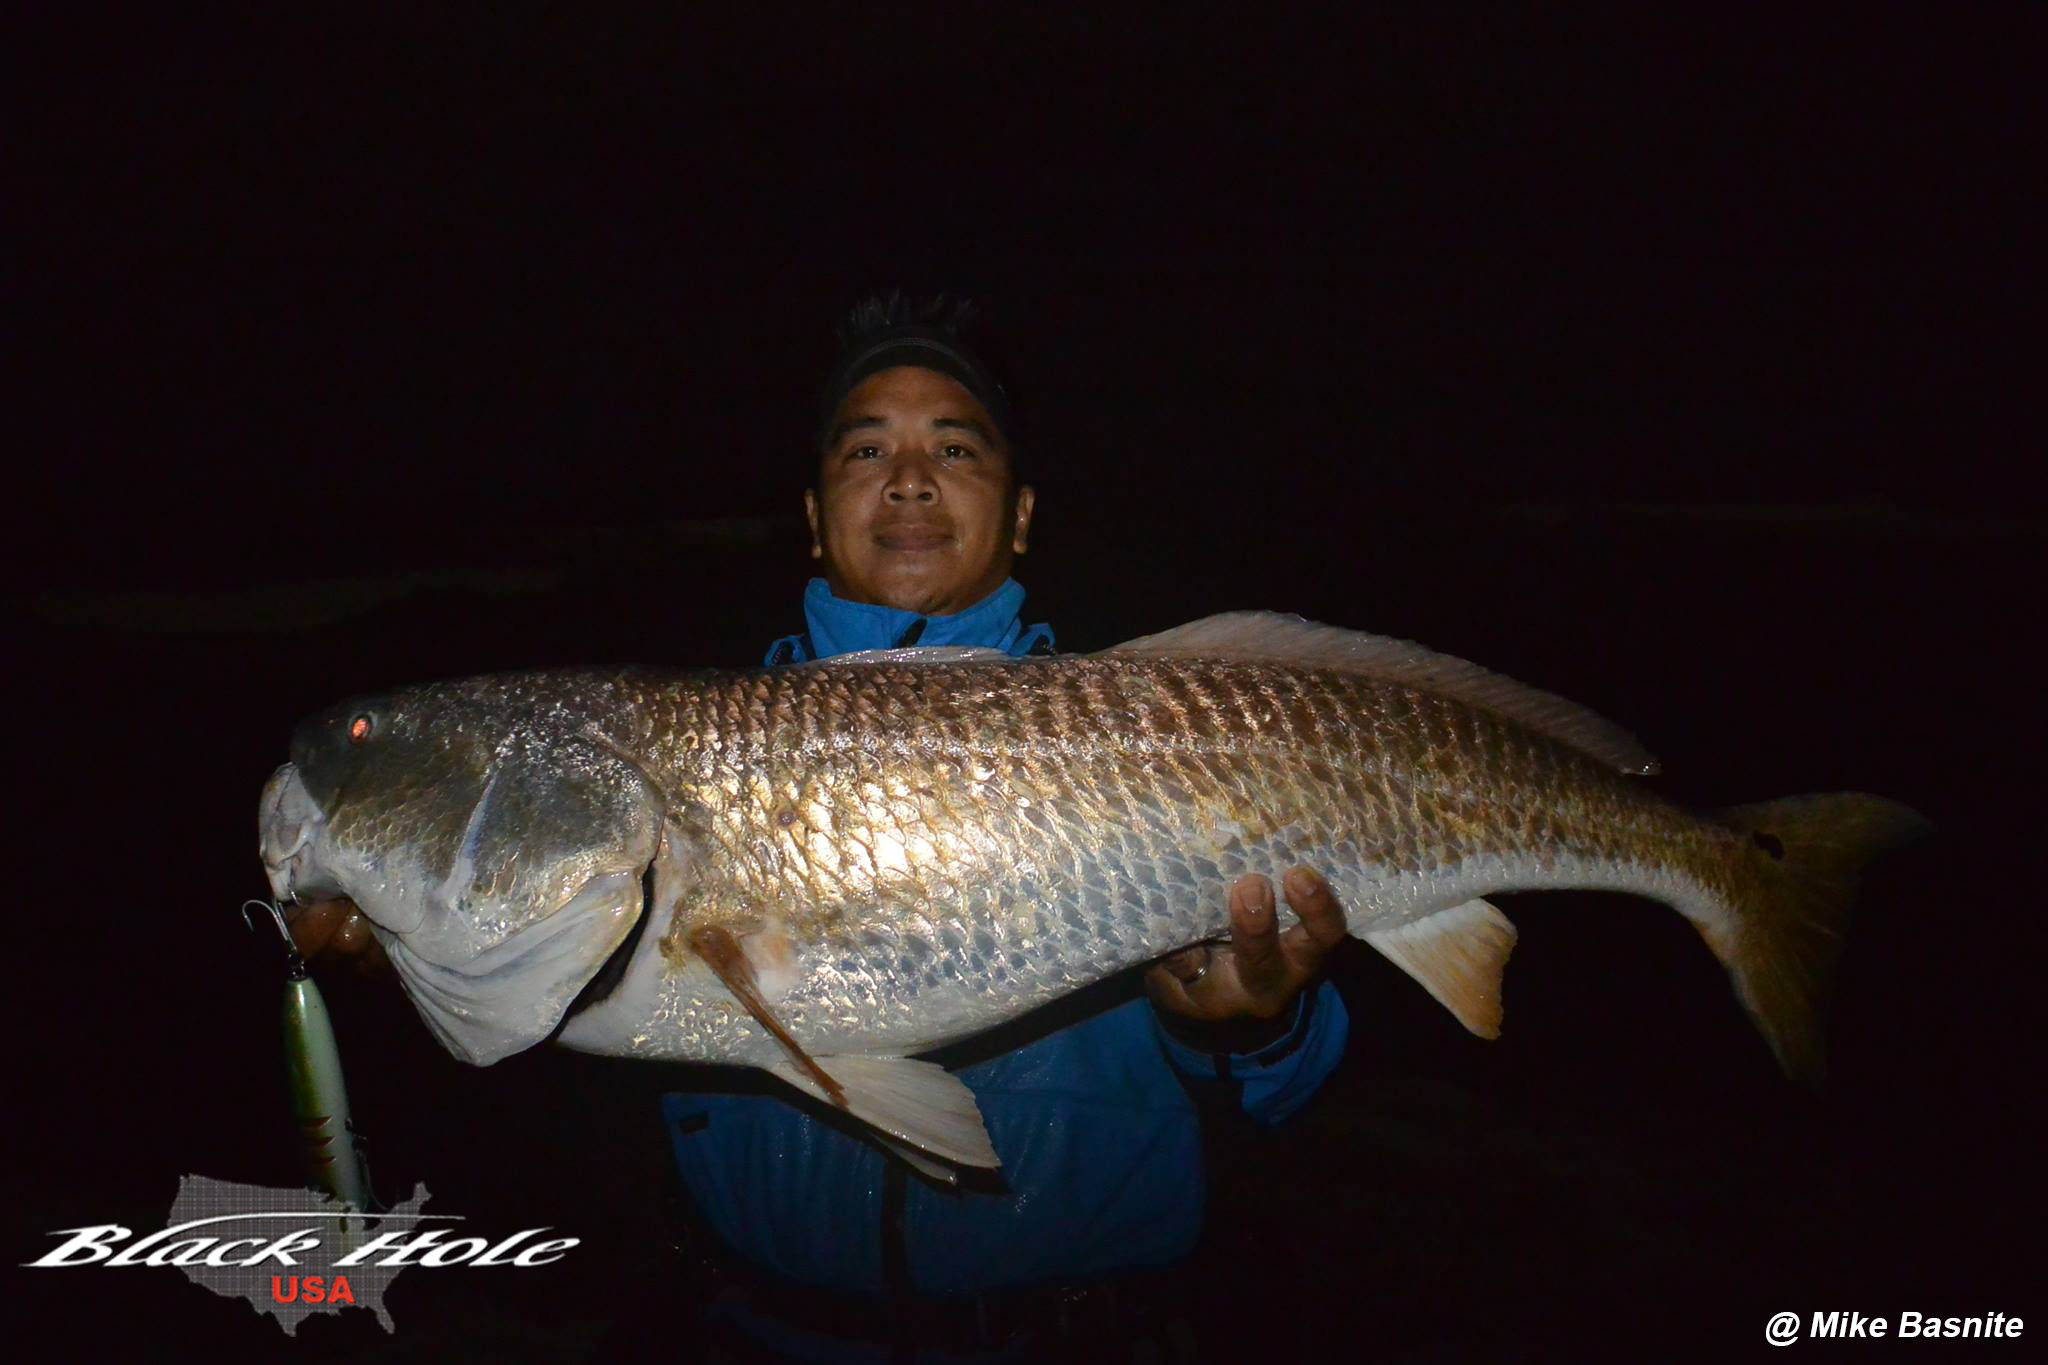 mike-basnite-106n-h-red-drum-copy.jpg